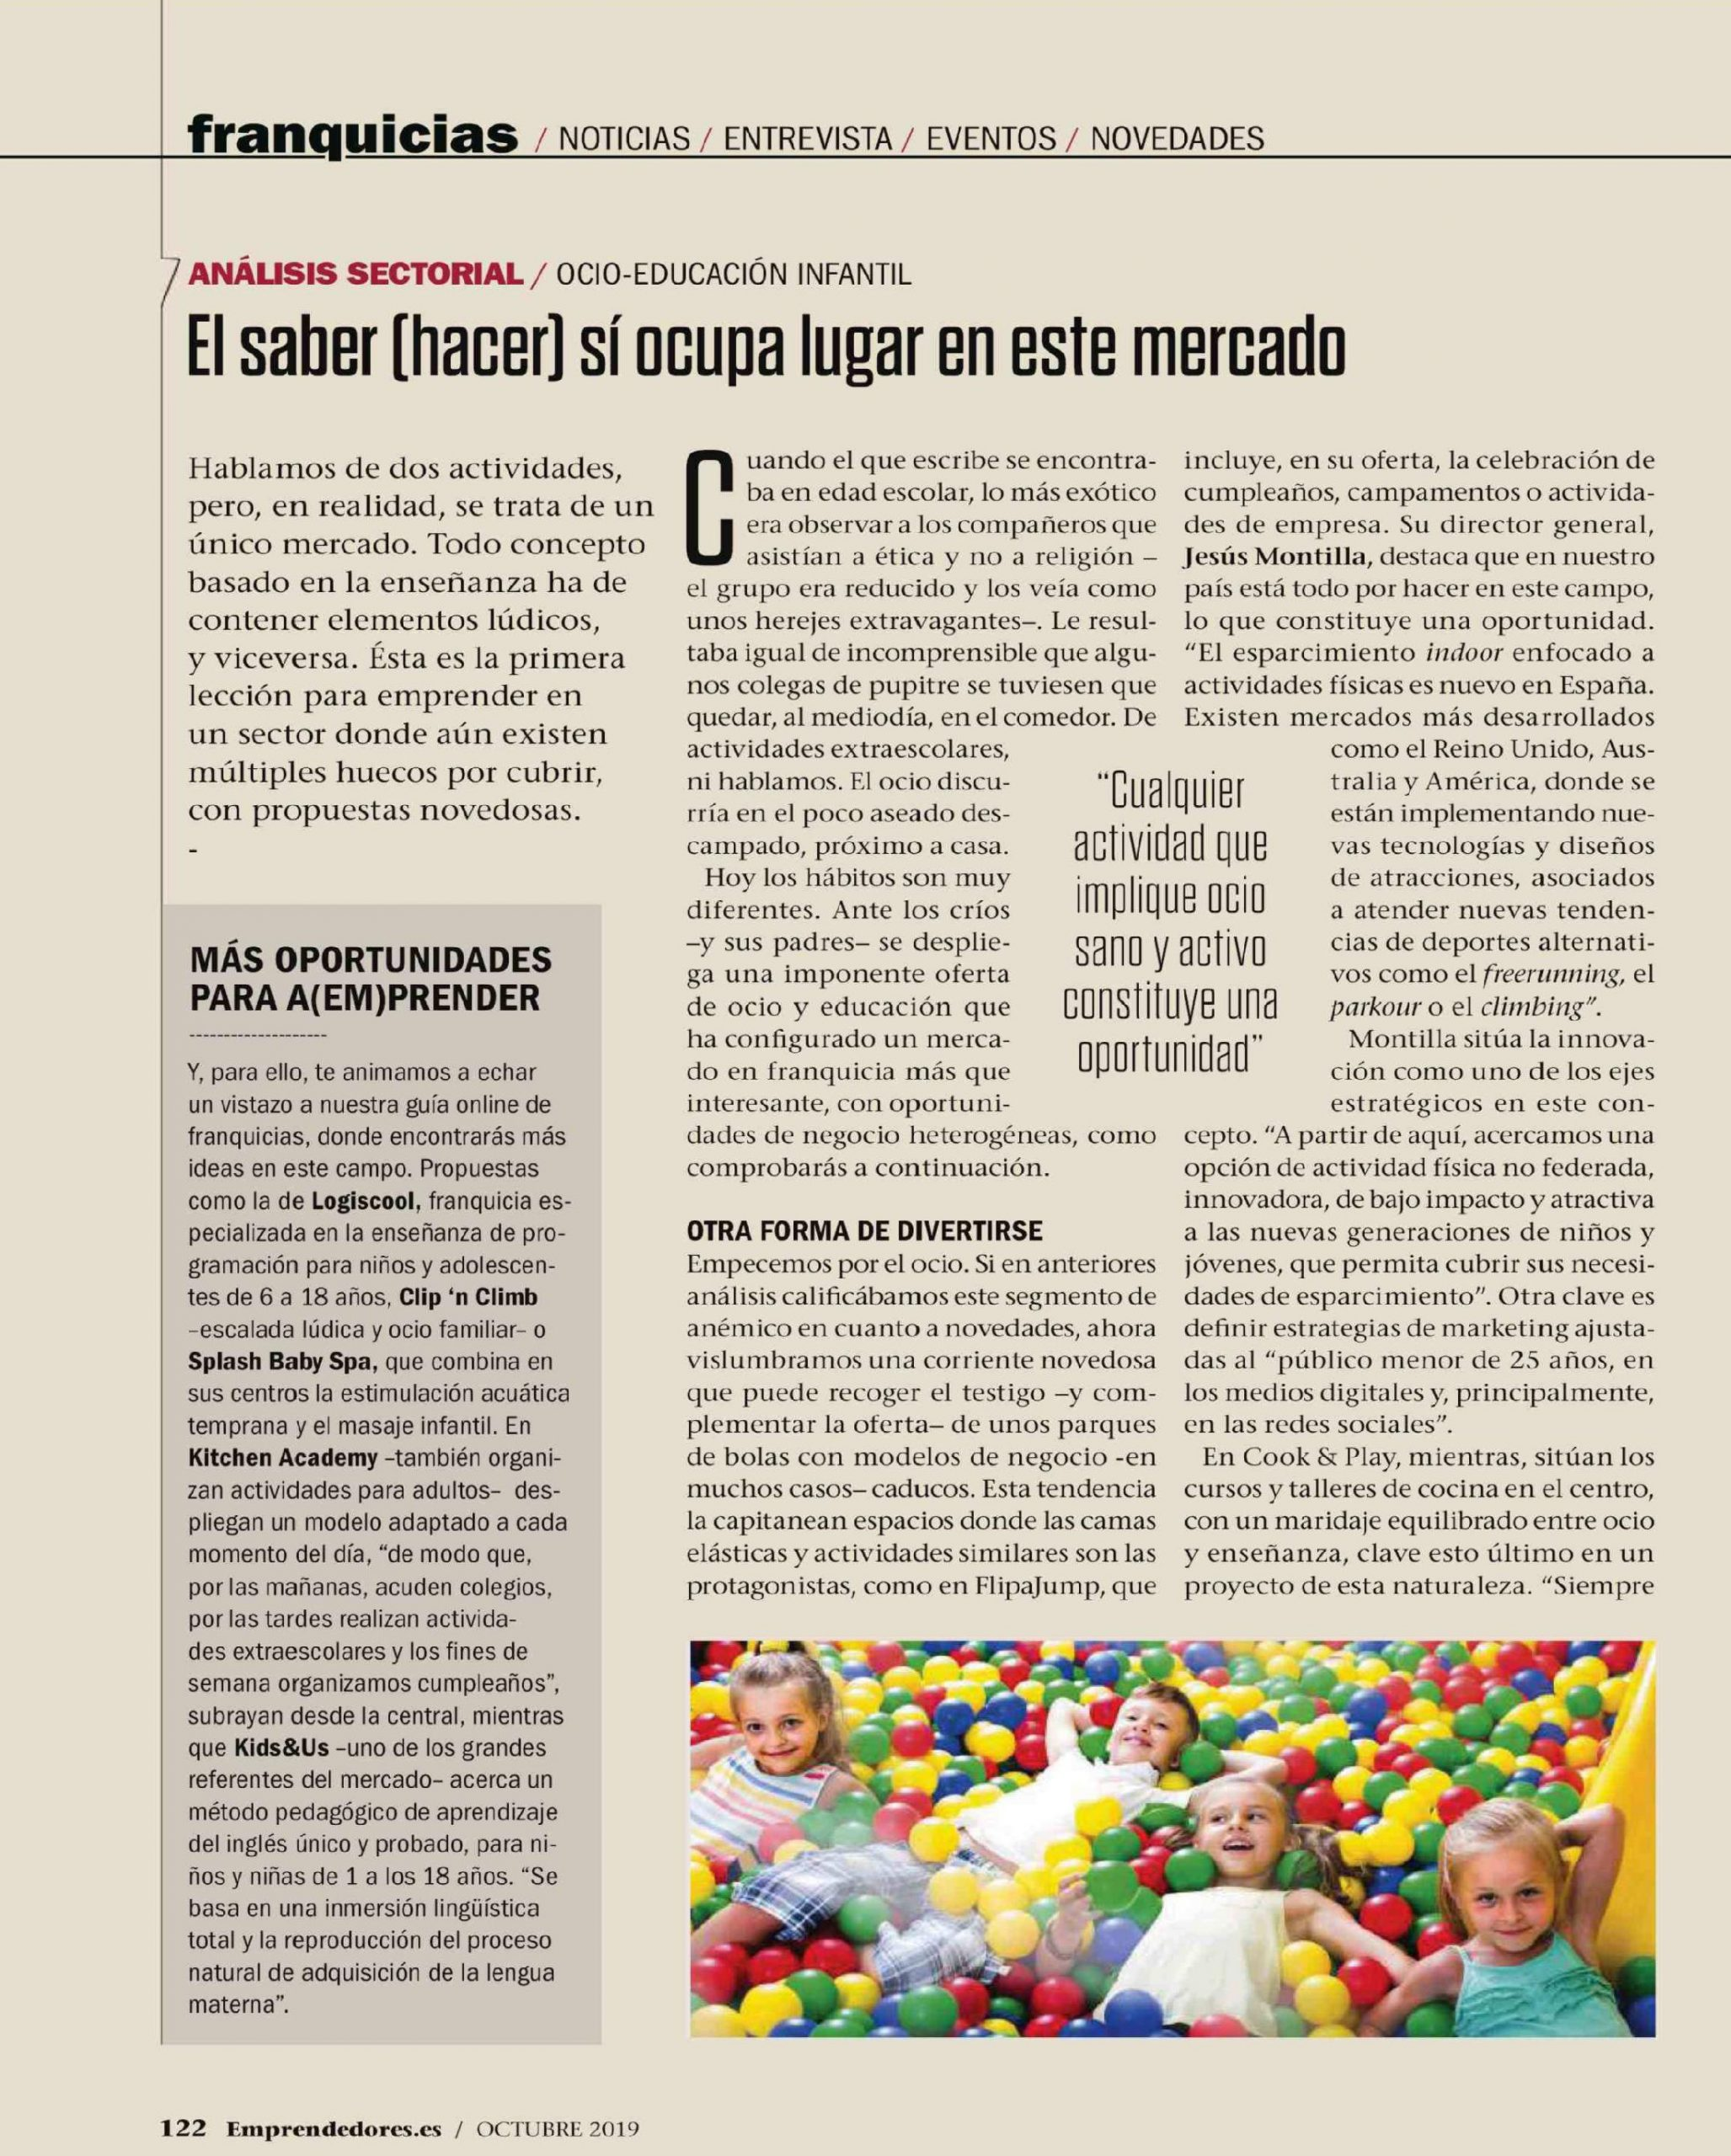 Noticia revista emprendedores sobre analisis sector educación